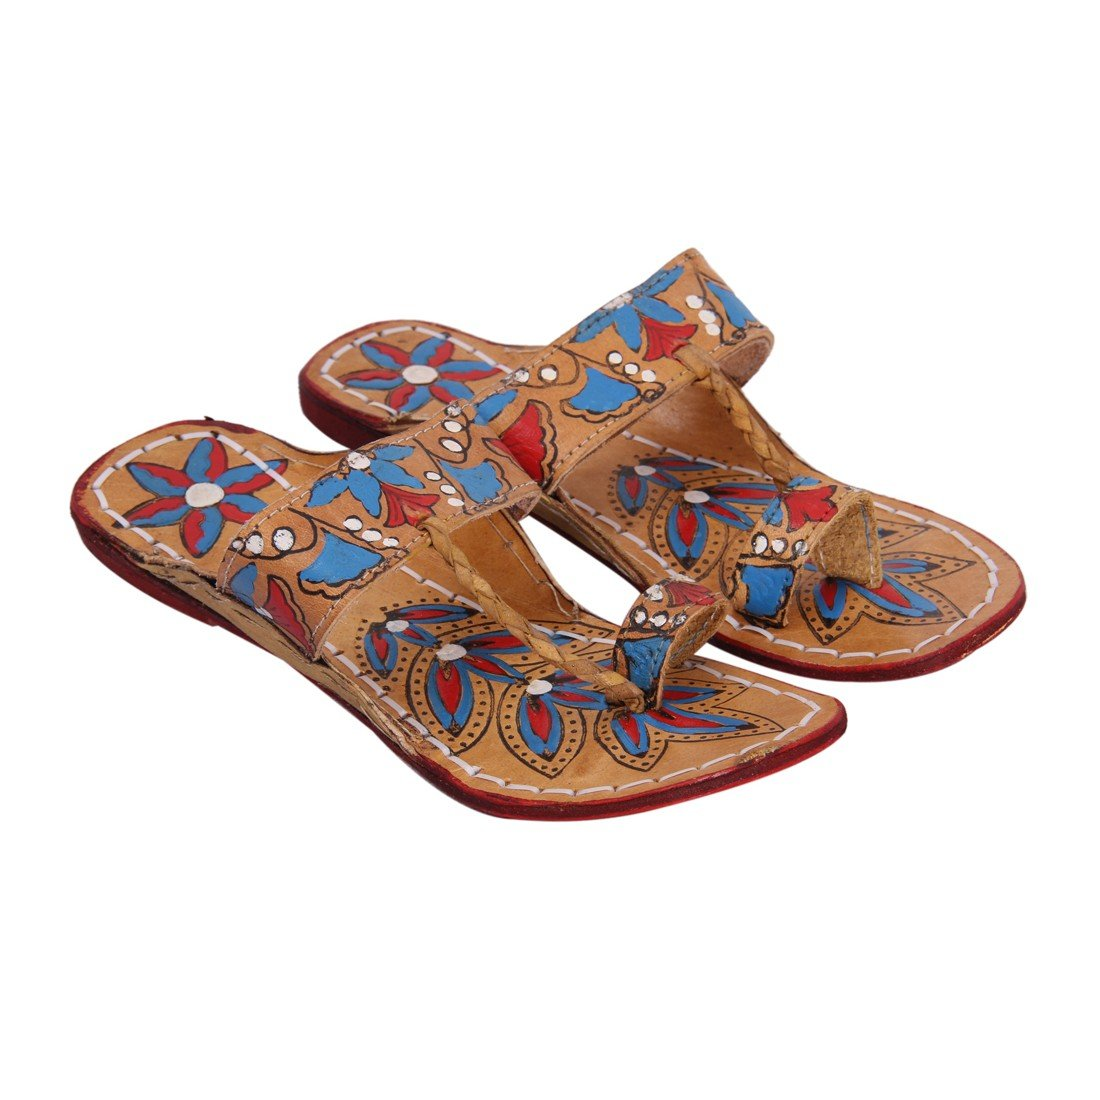 INDCROWN Hippie Indian Water Buffalo Jesus Sandle 100% Leather Kolhapuri Flat Flower Print Woman Sandle B07F75GKZK 10 B(M) US|Blue